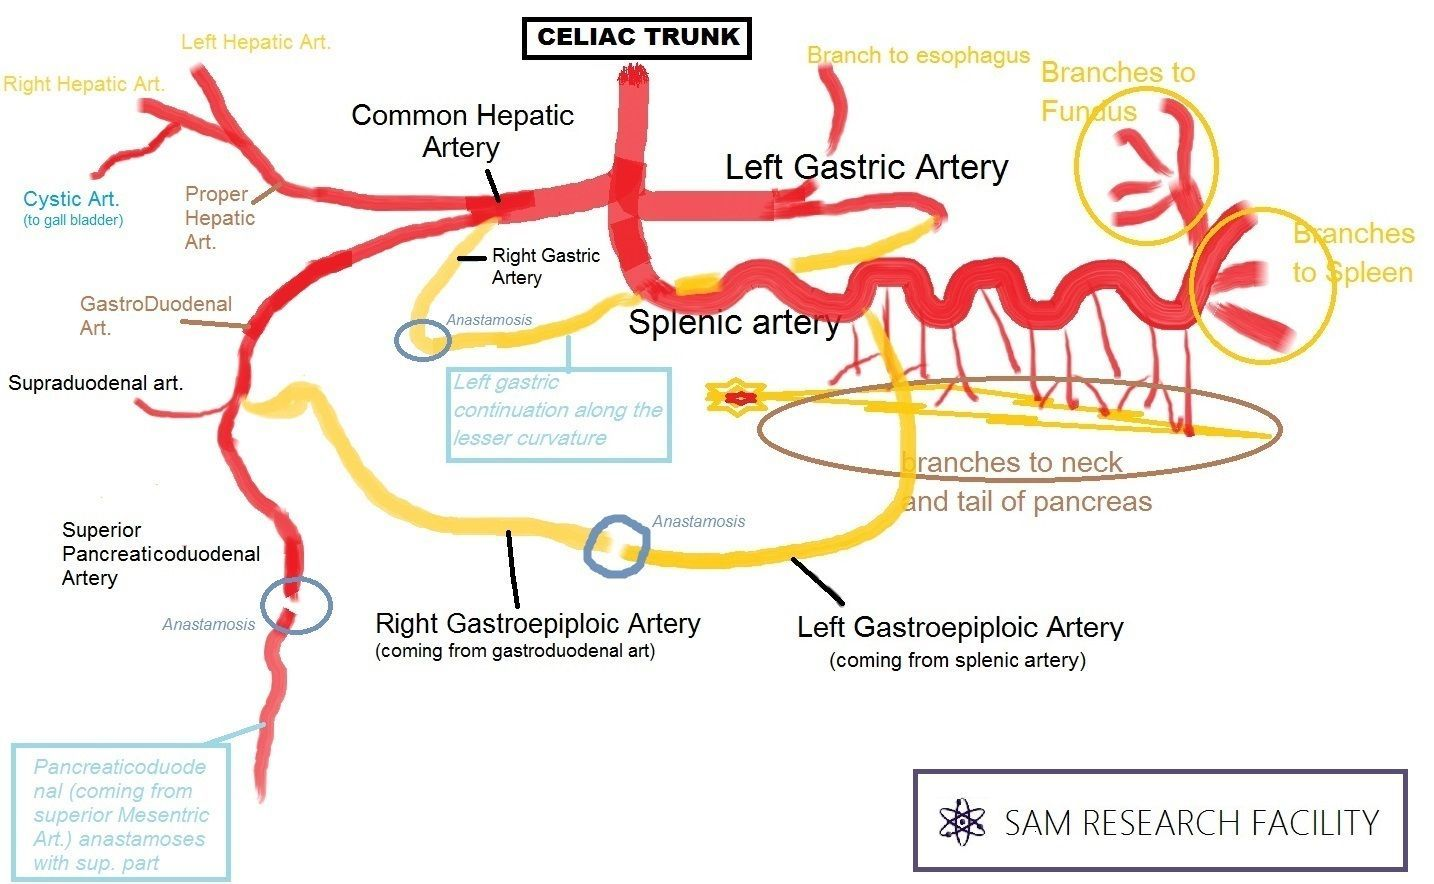 Showing The Total Extent Of The Celiac Trunk And Its Branches